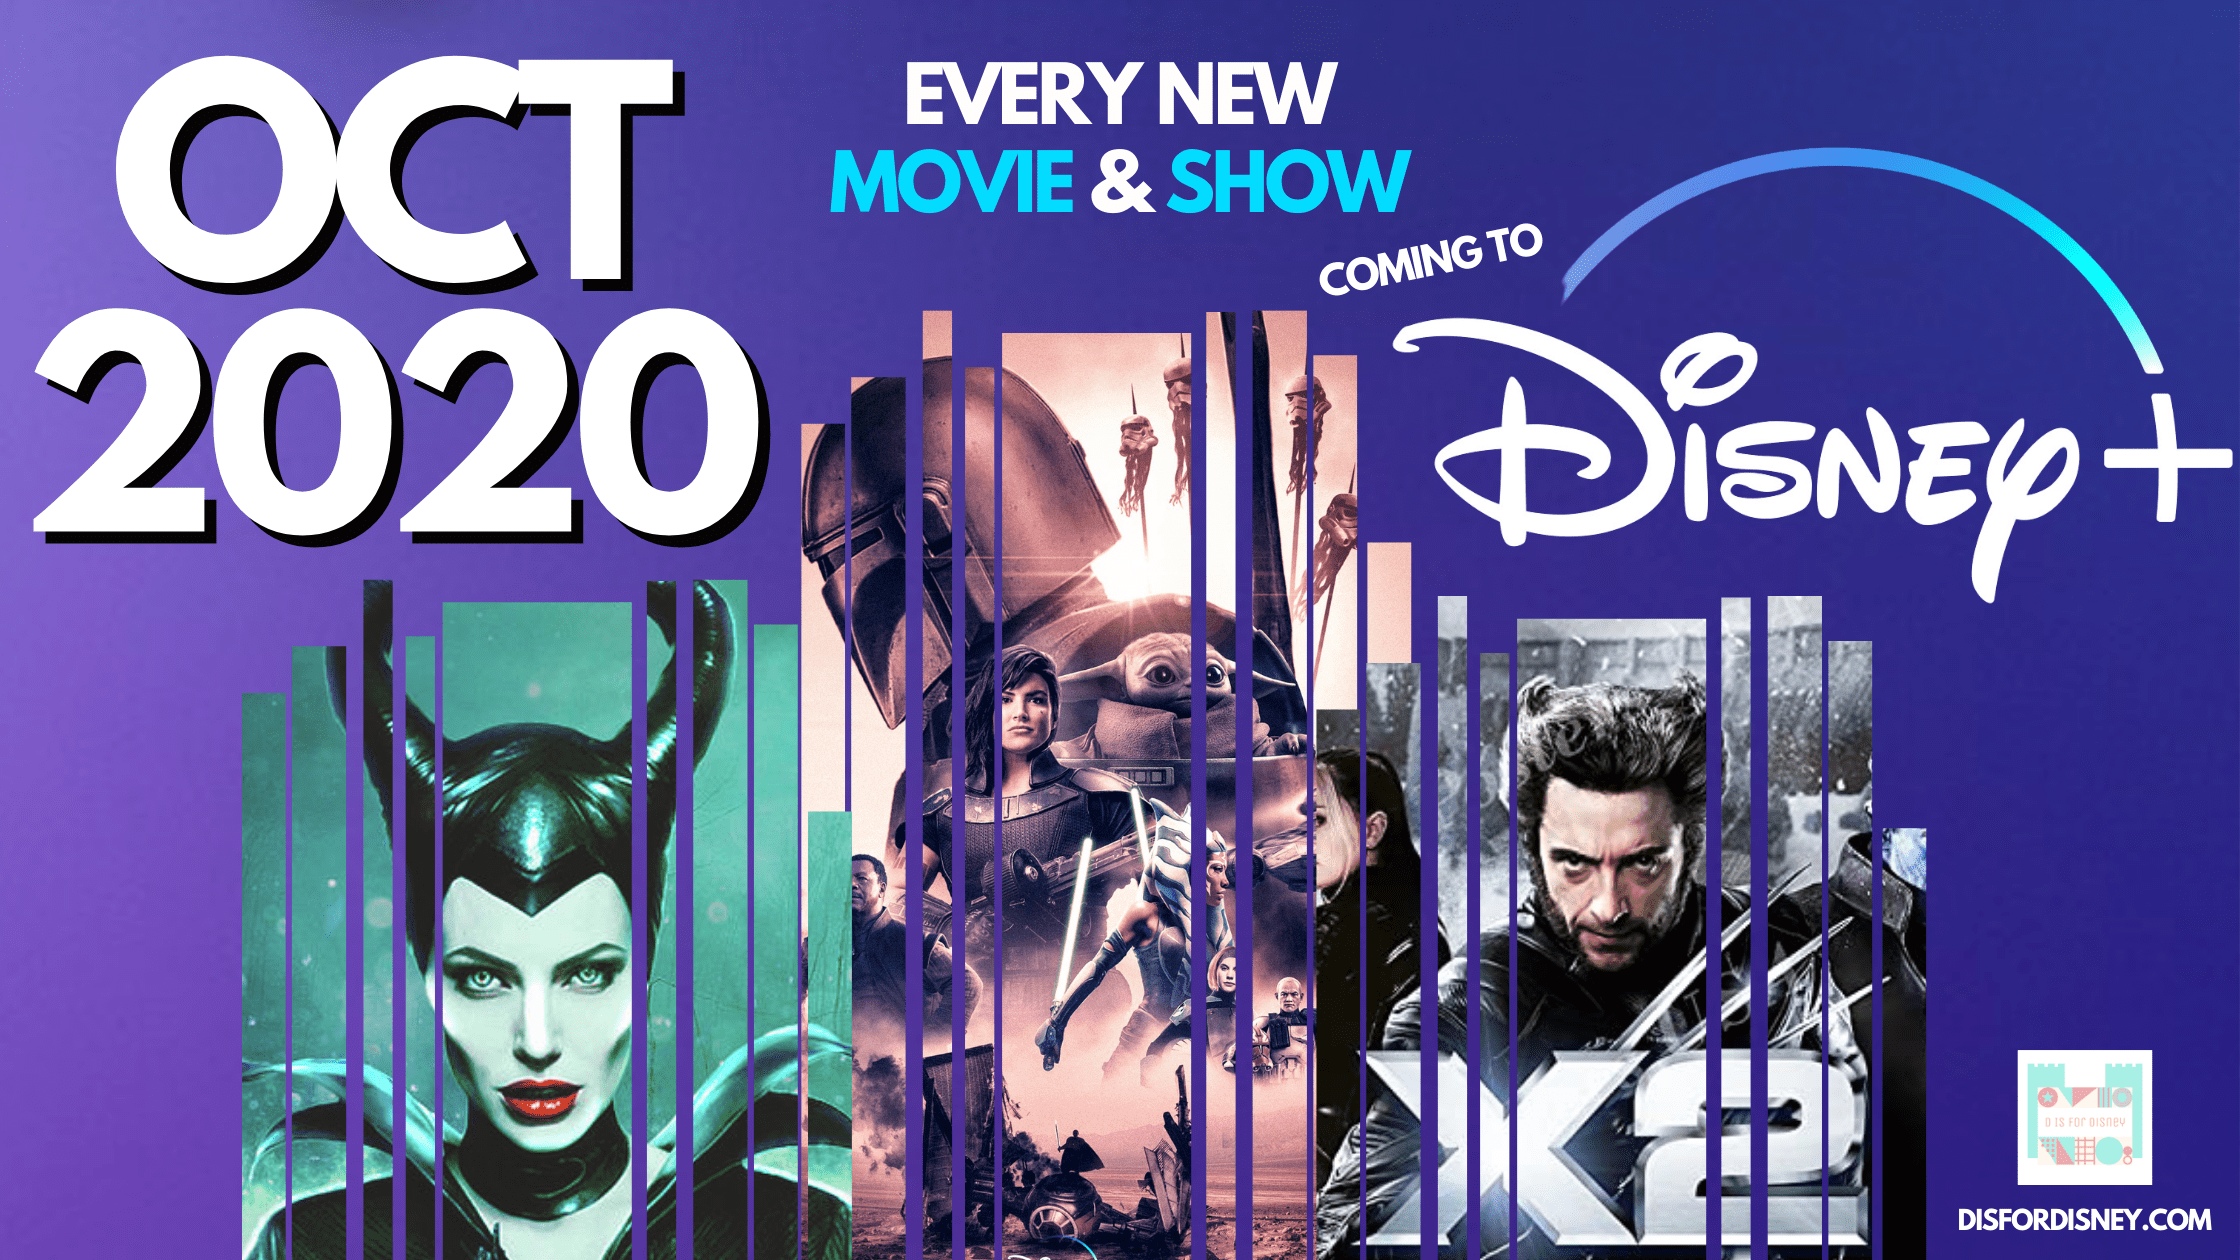 Every New Movie & Show Coming to Disney Plus | October 2020